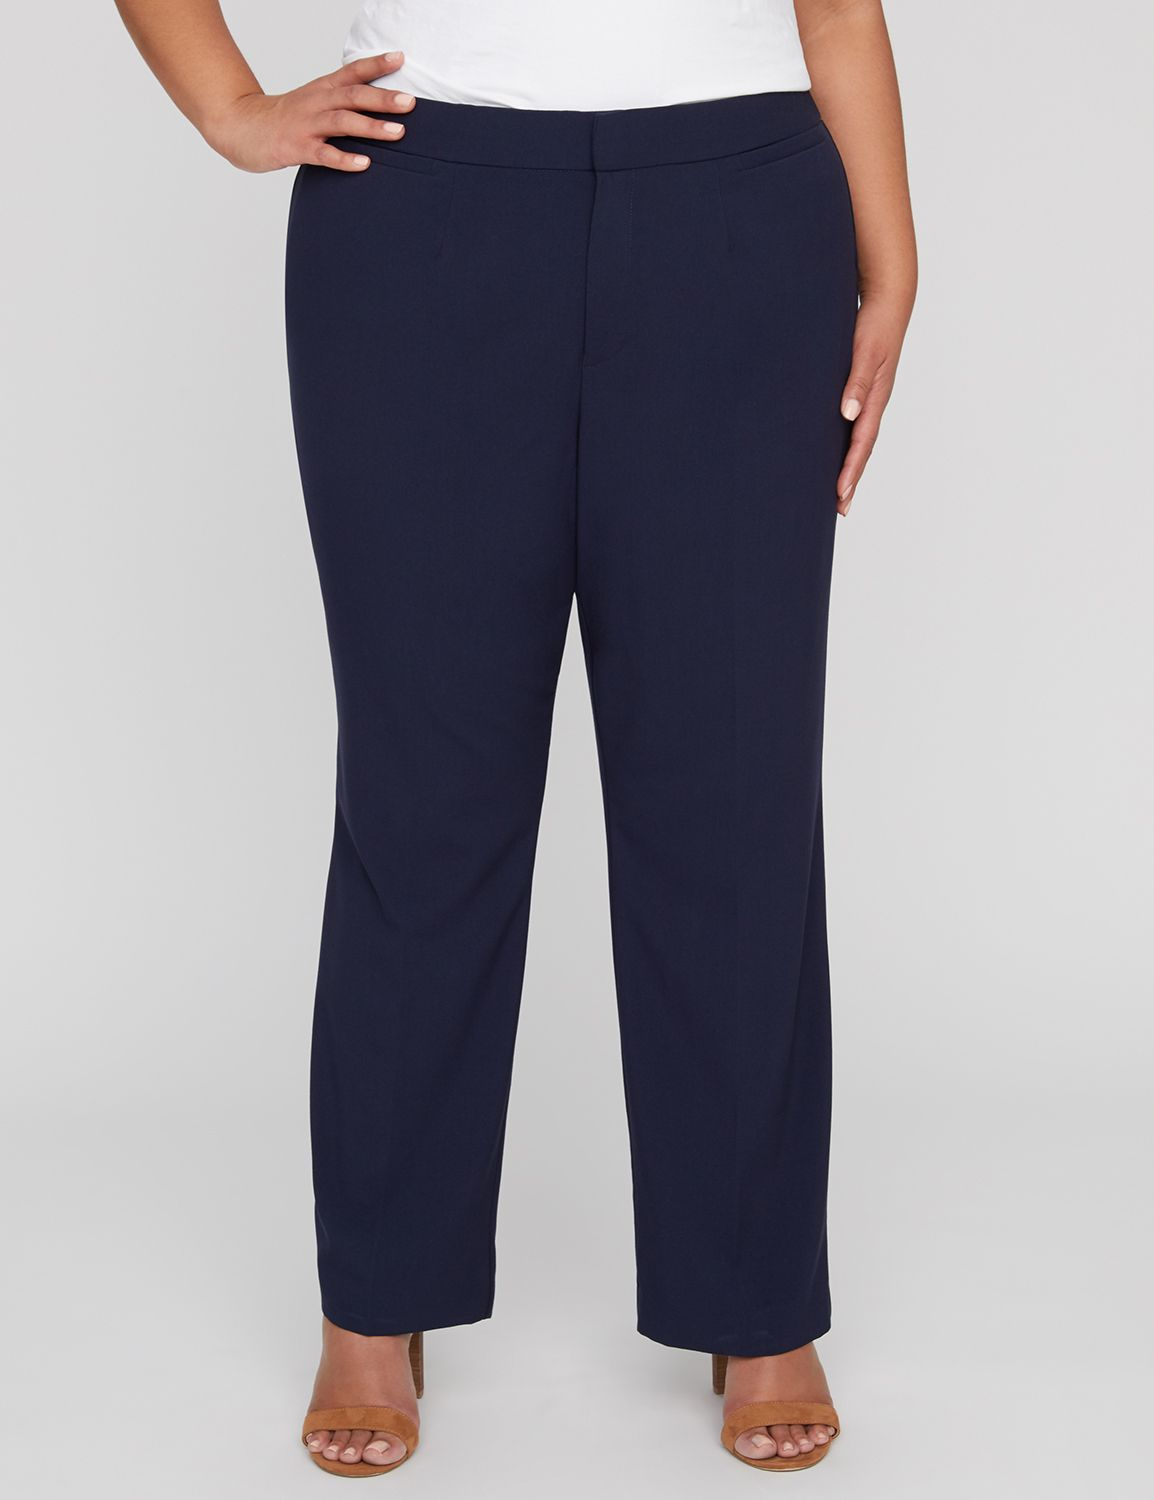 Right Fit Pant (Curvy) Right Fit Pant (Curvy) MP-300043646